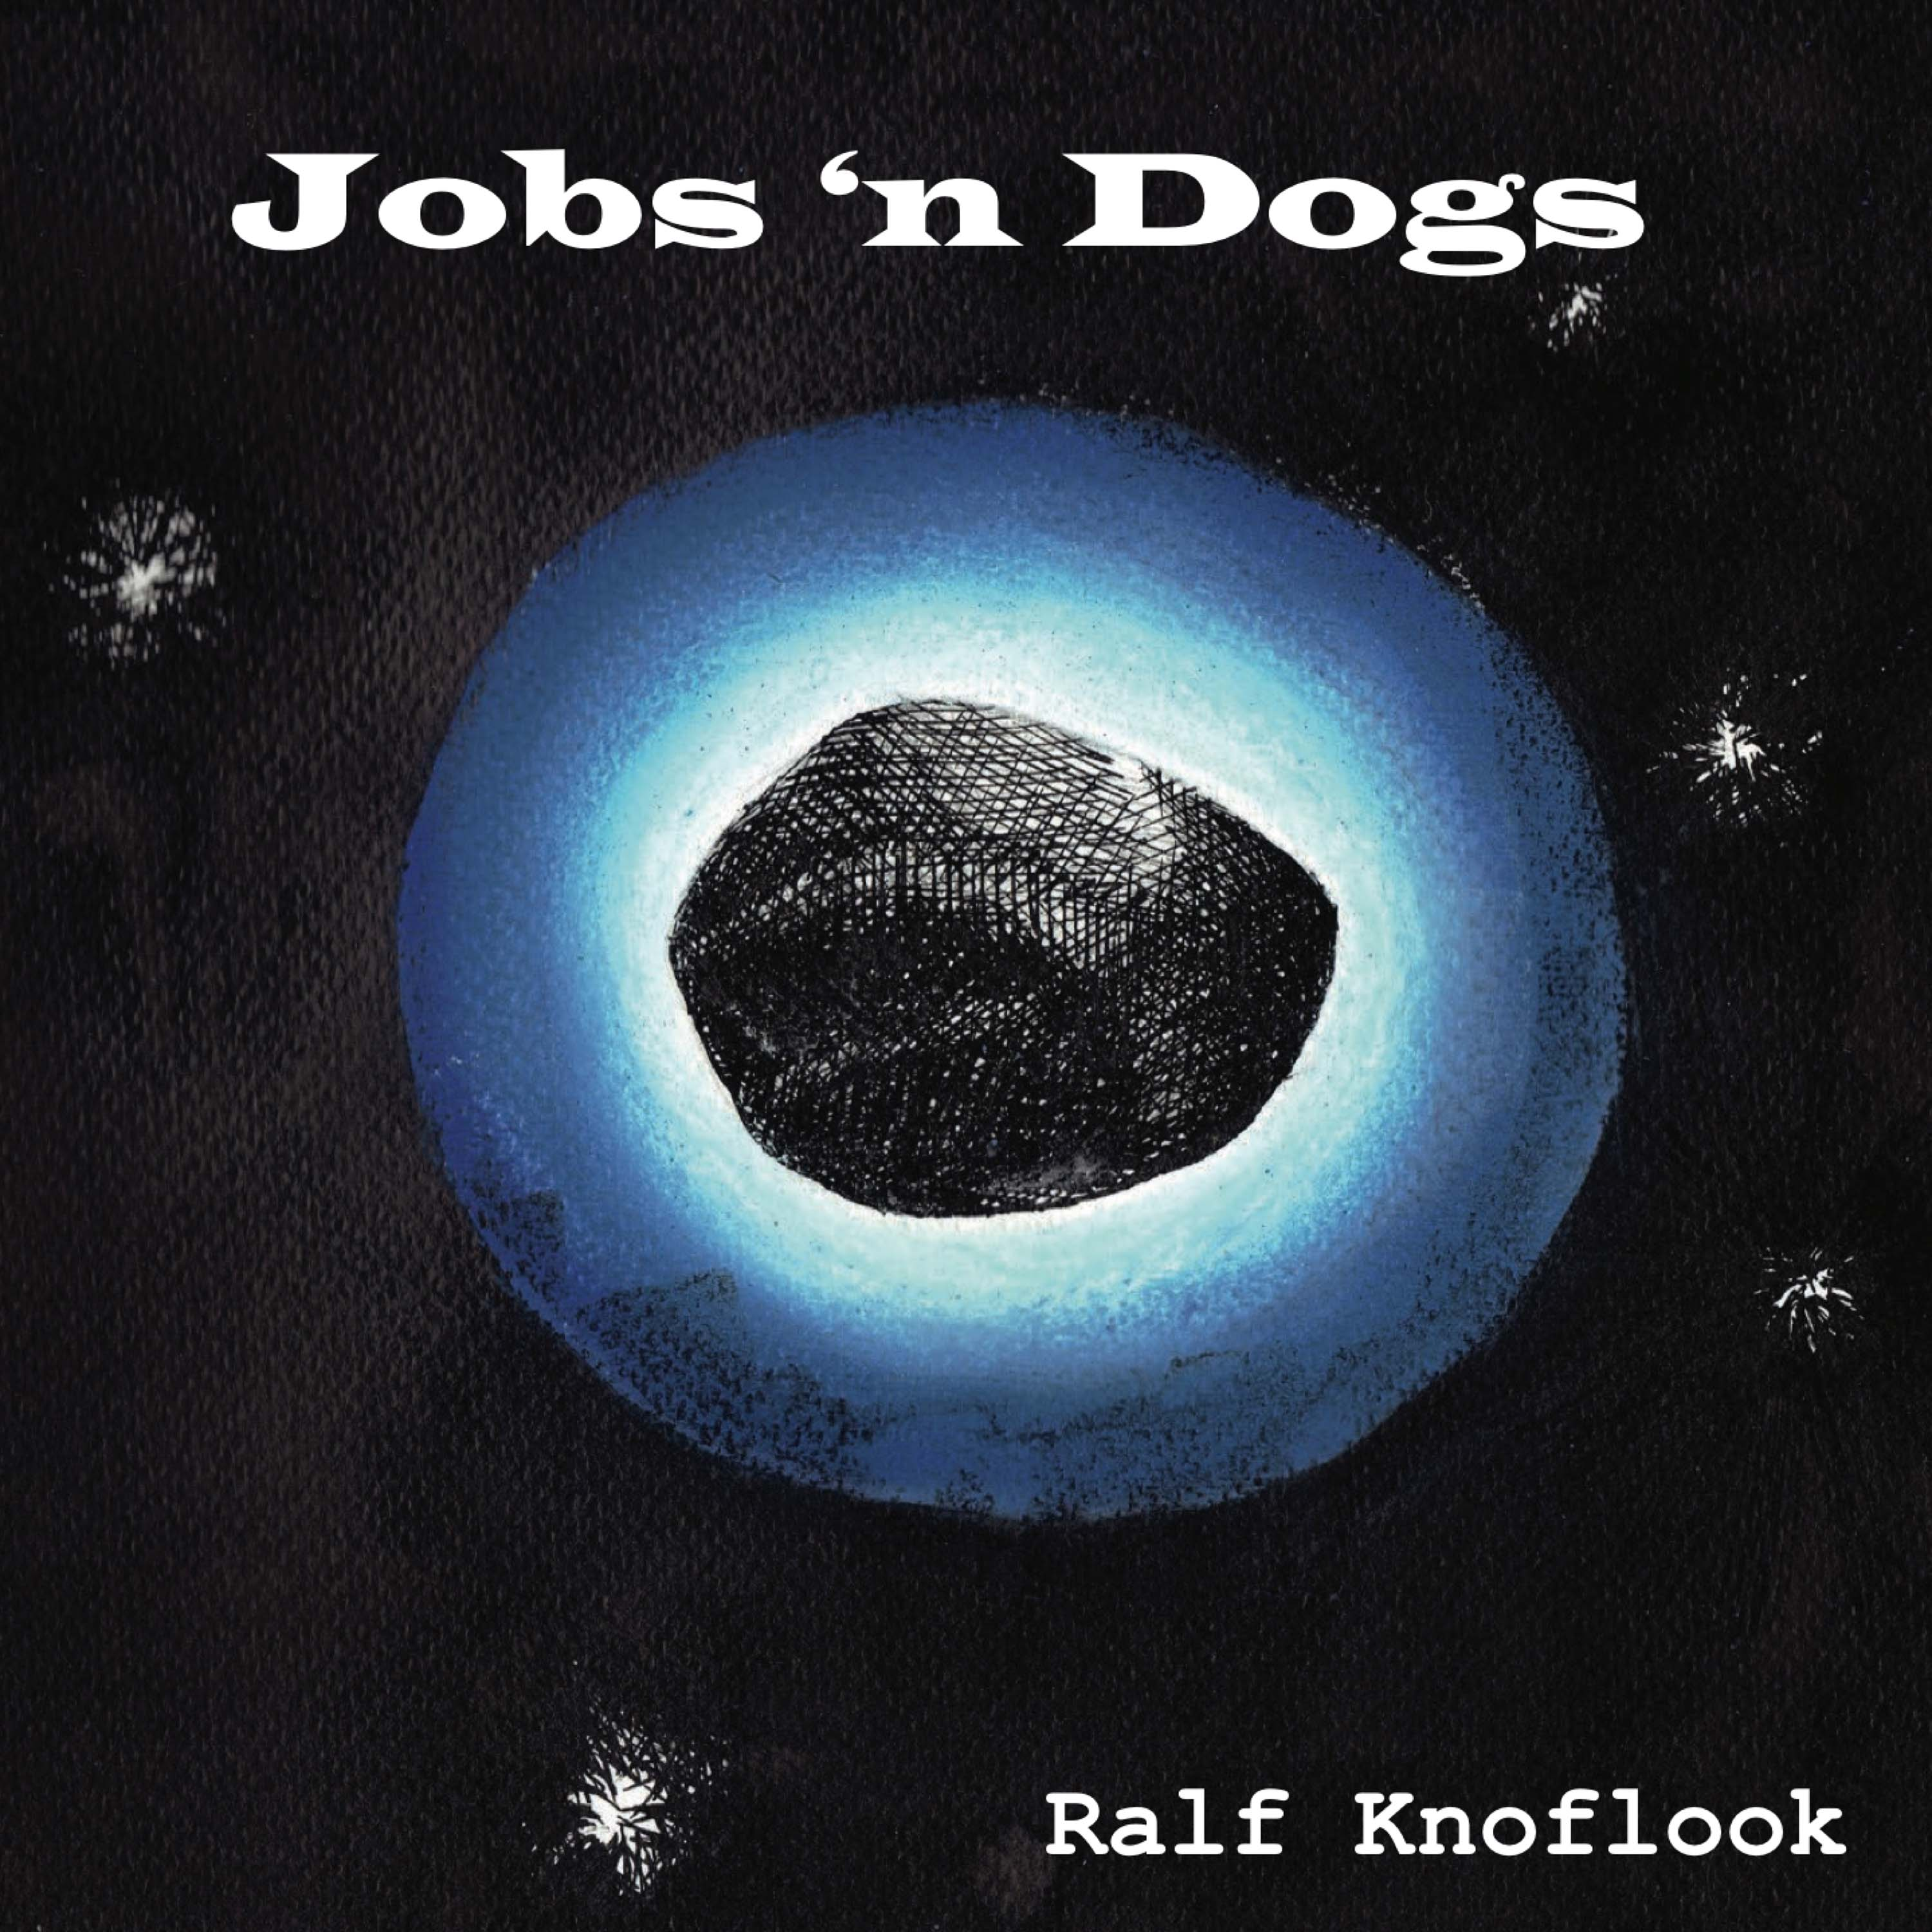 Ralf Knoflook - Jobs 'n Dogs